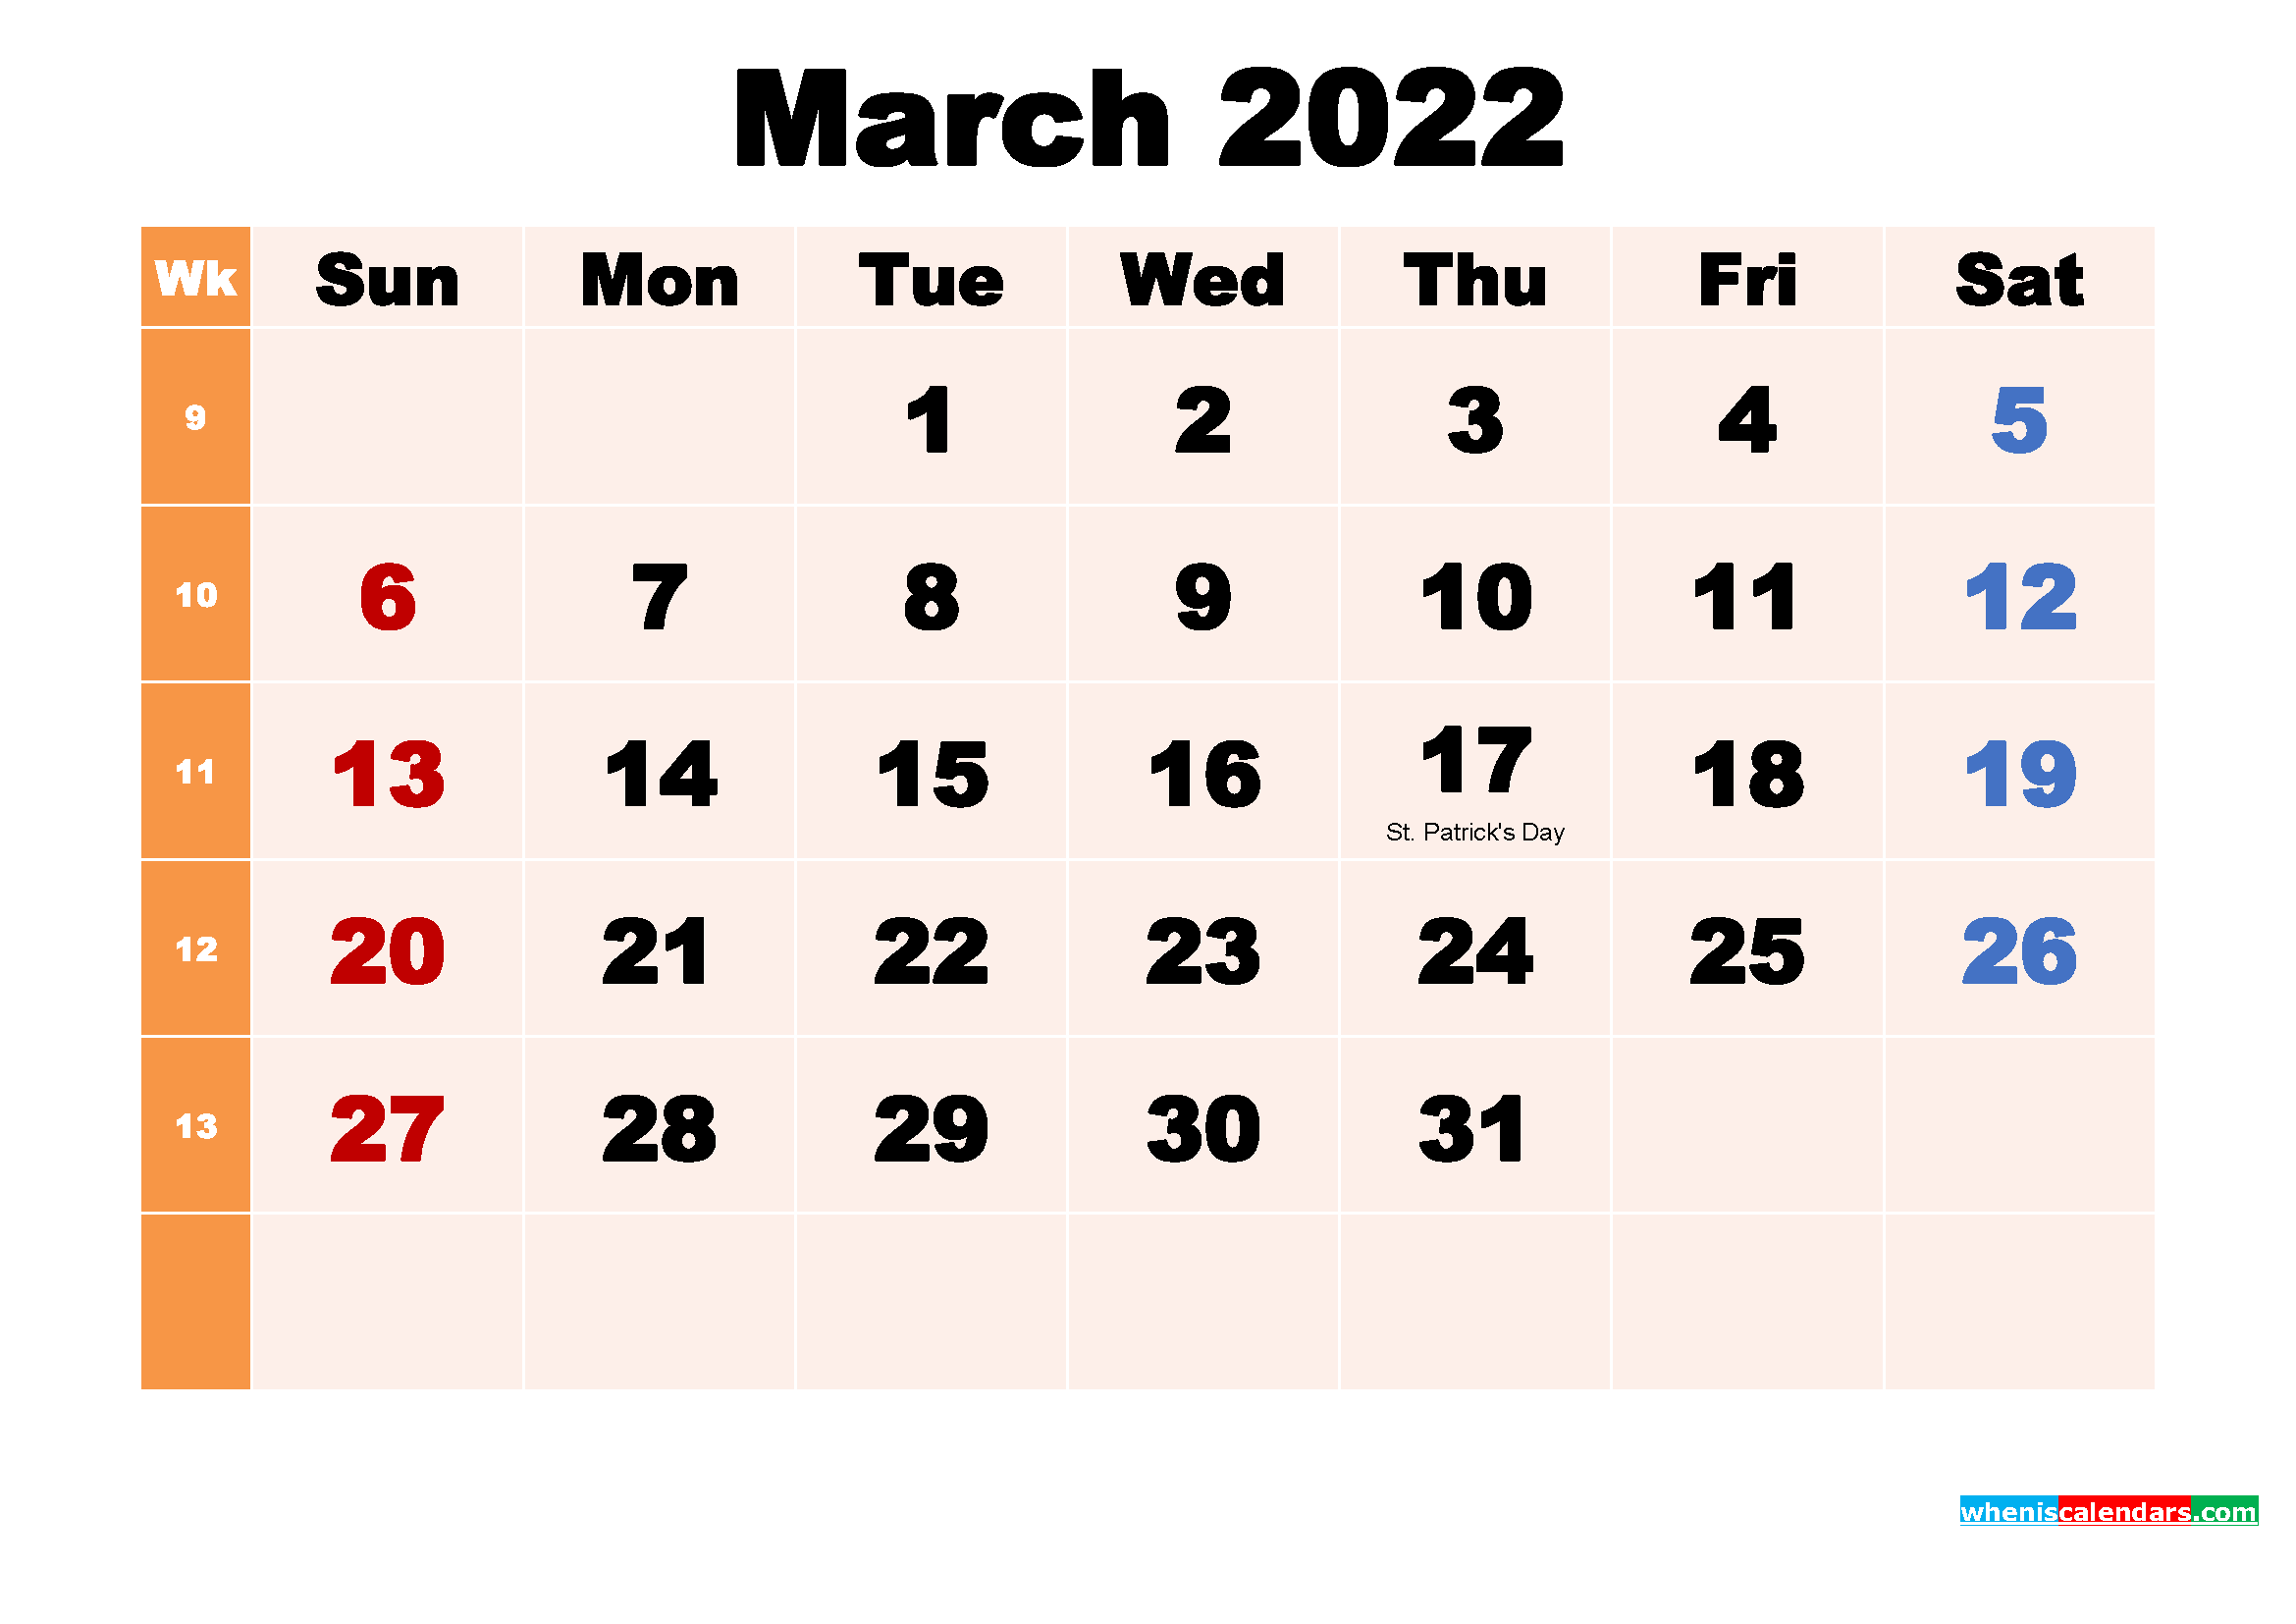 March 2022 Calendar Wallpaper Free Download